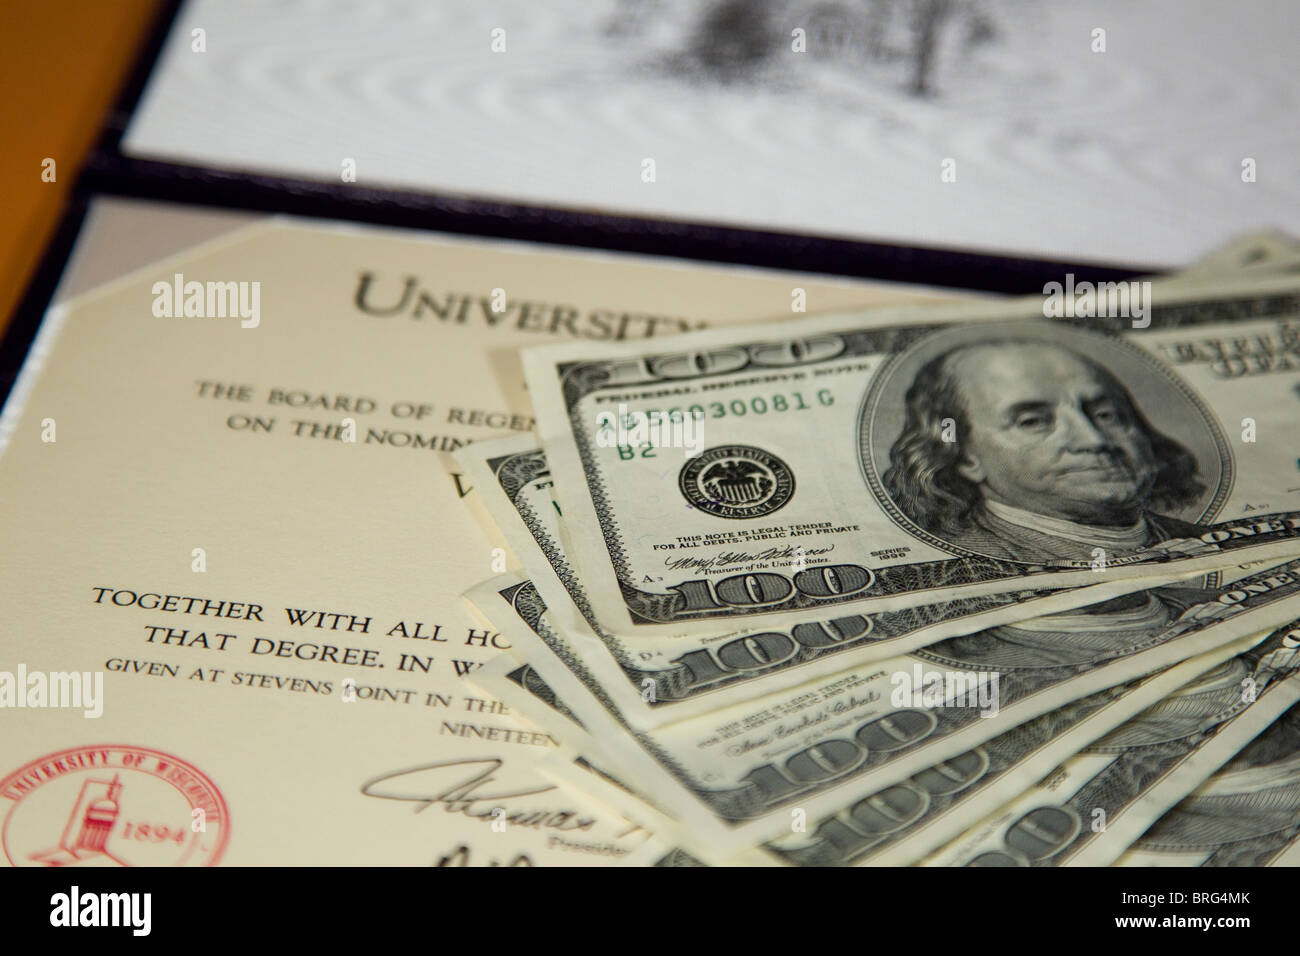 Money and diploma, tuition and fees for college degree Stock Photo